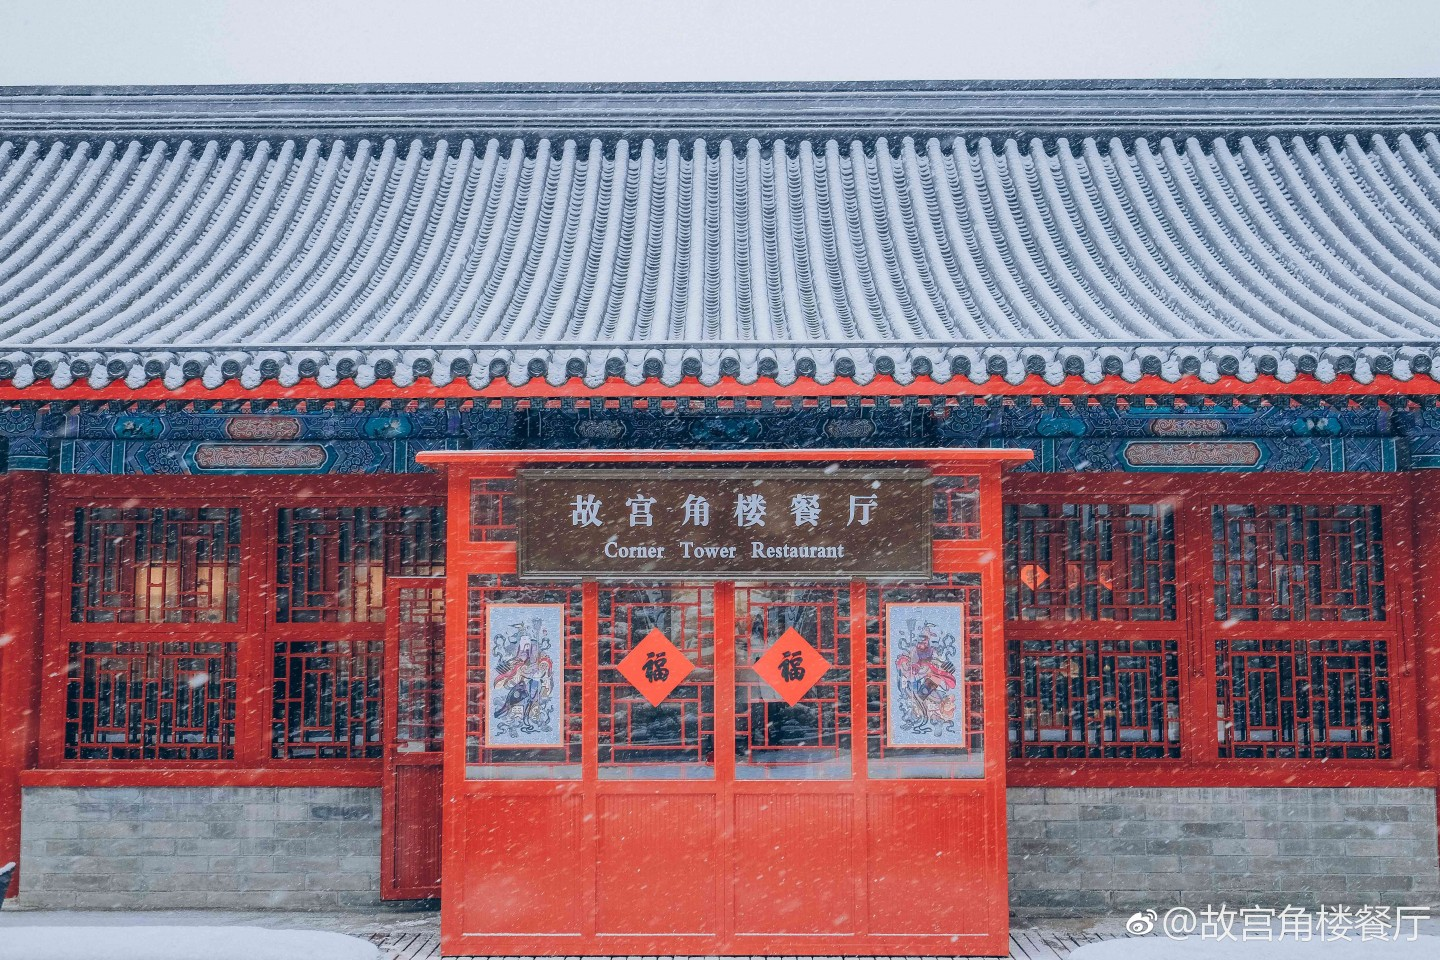 The Palace Museum's Corner Tower Restaurant. (Corner Tower Restaurant official Weibo)